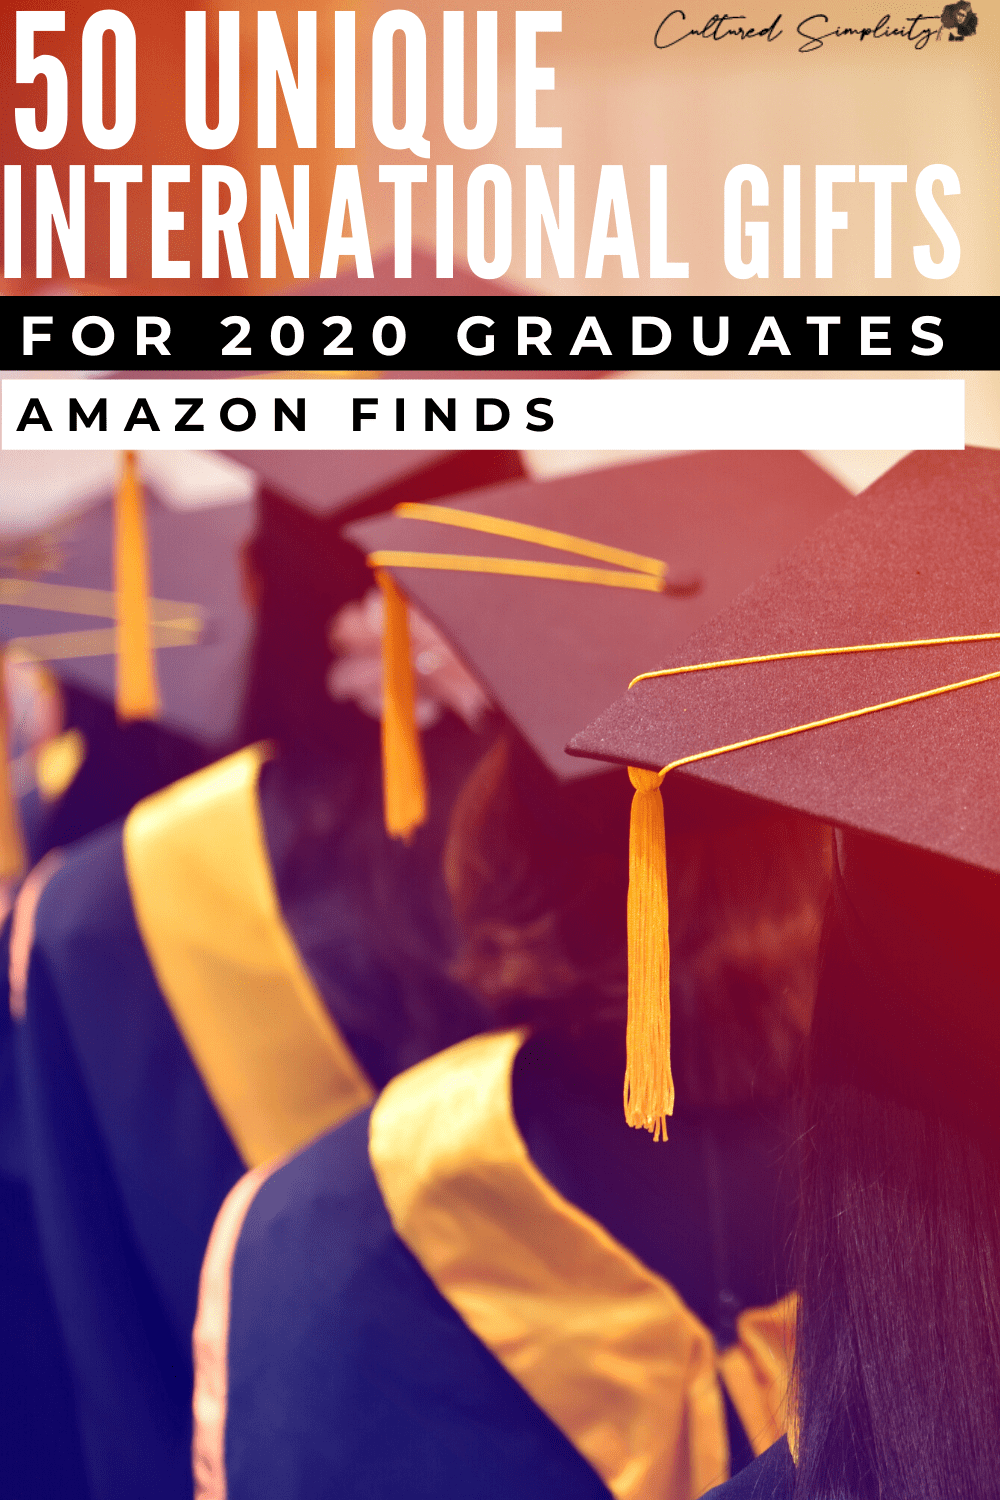 50 Unique International Gifts for 2020 graduates | Amazon Finds